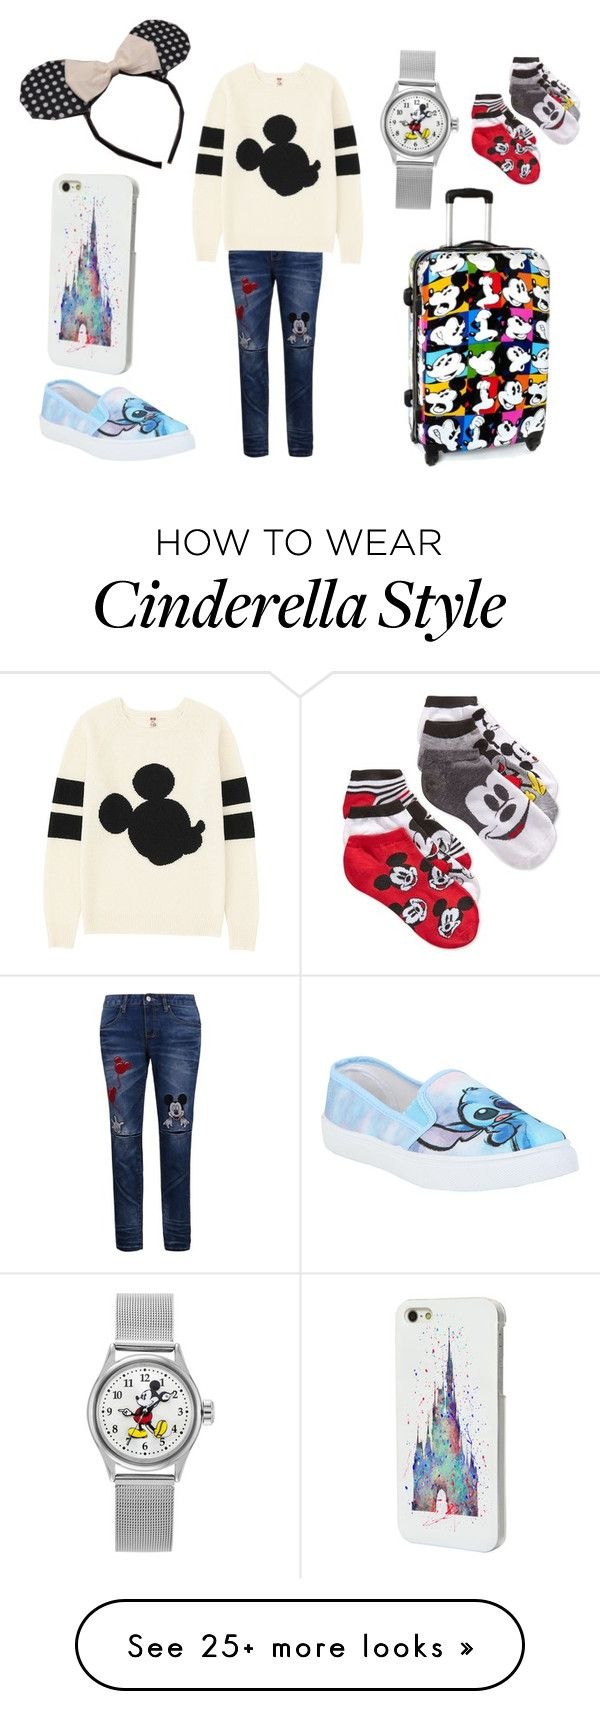 """Traveling disney style"" by madeleineunicorn on Polyvore featuring Disney and Uniqlo"